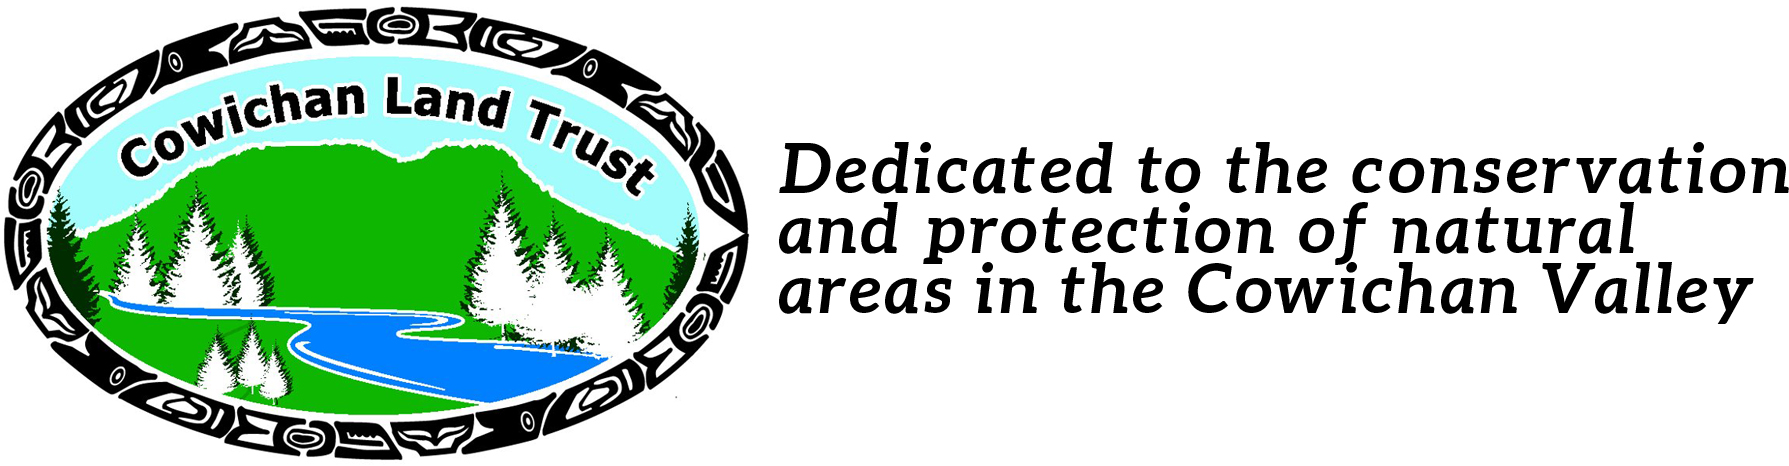 Dedicated to the conservation and protection of natural areas in the Cowichan Valley